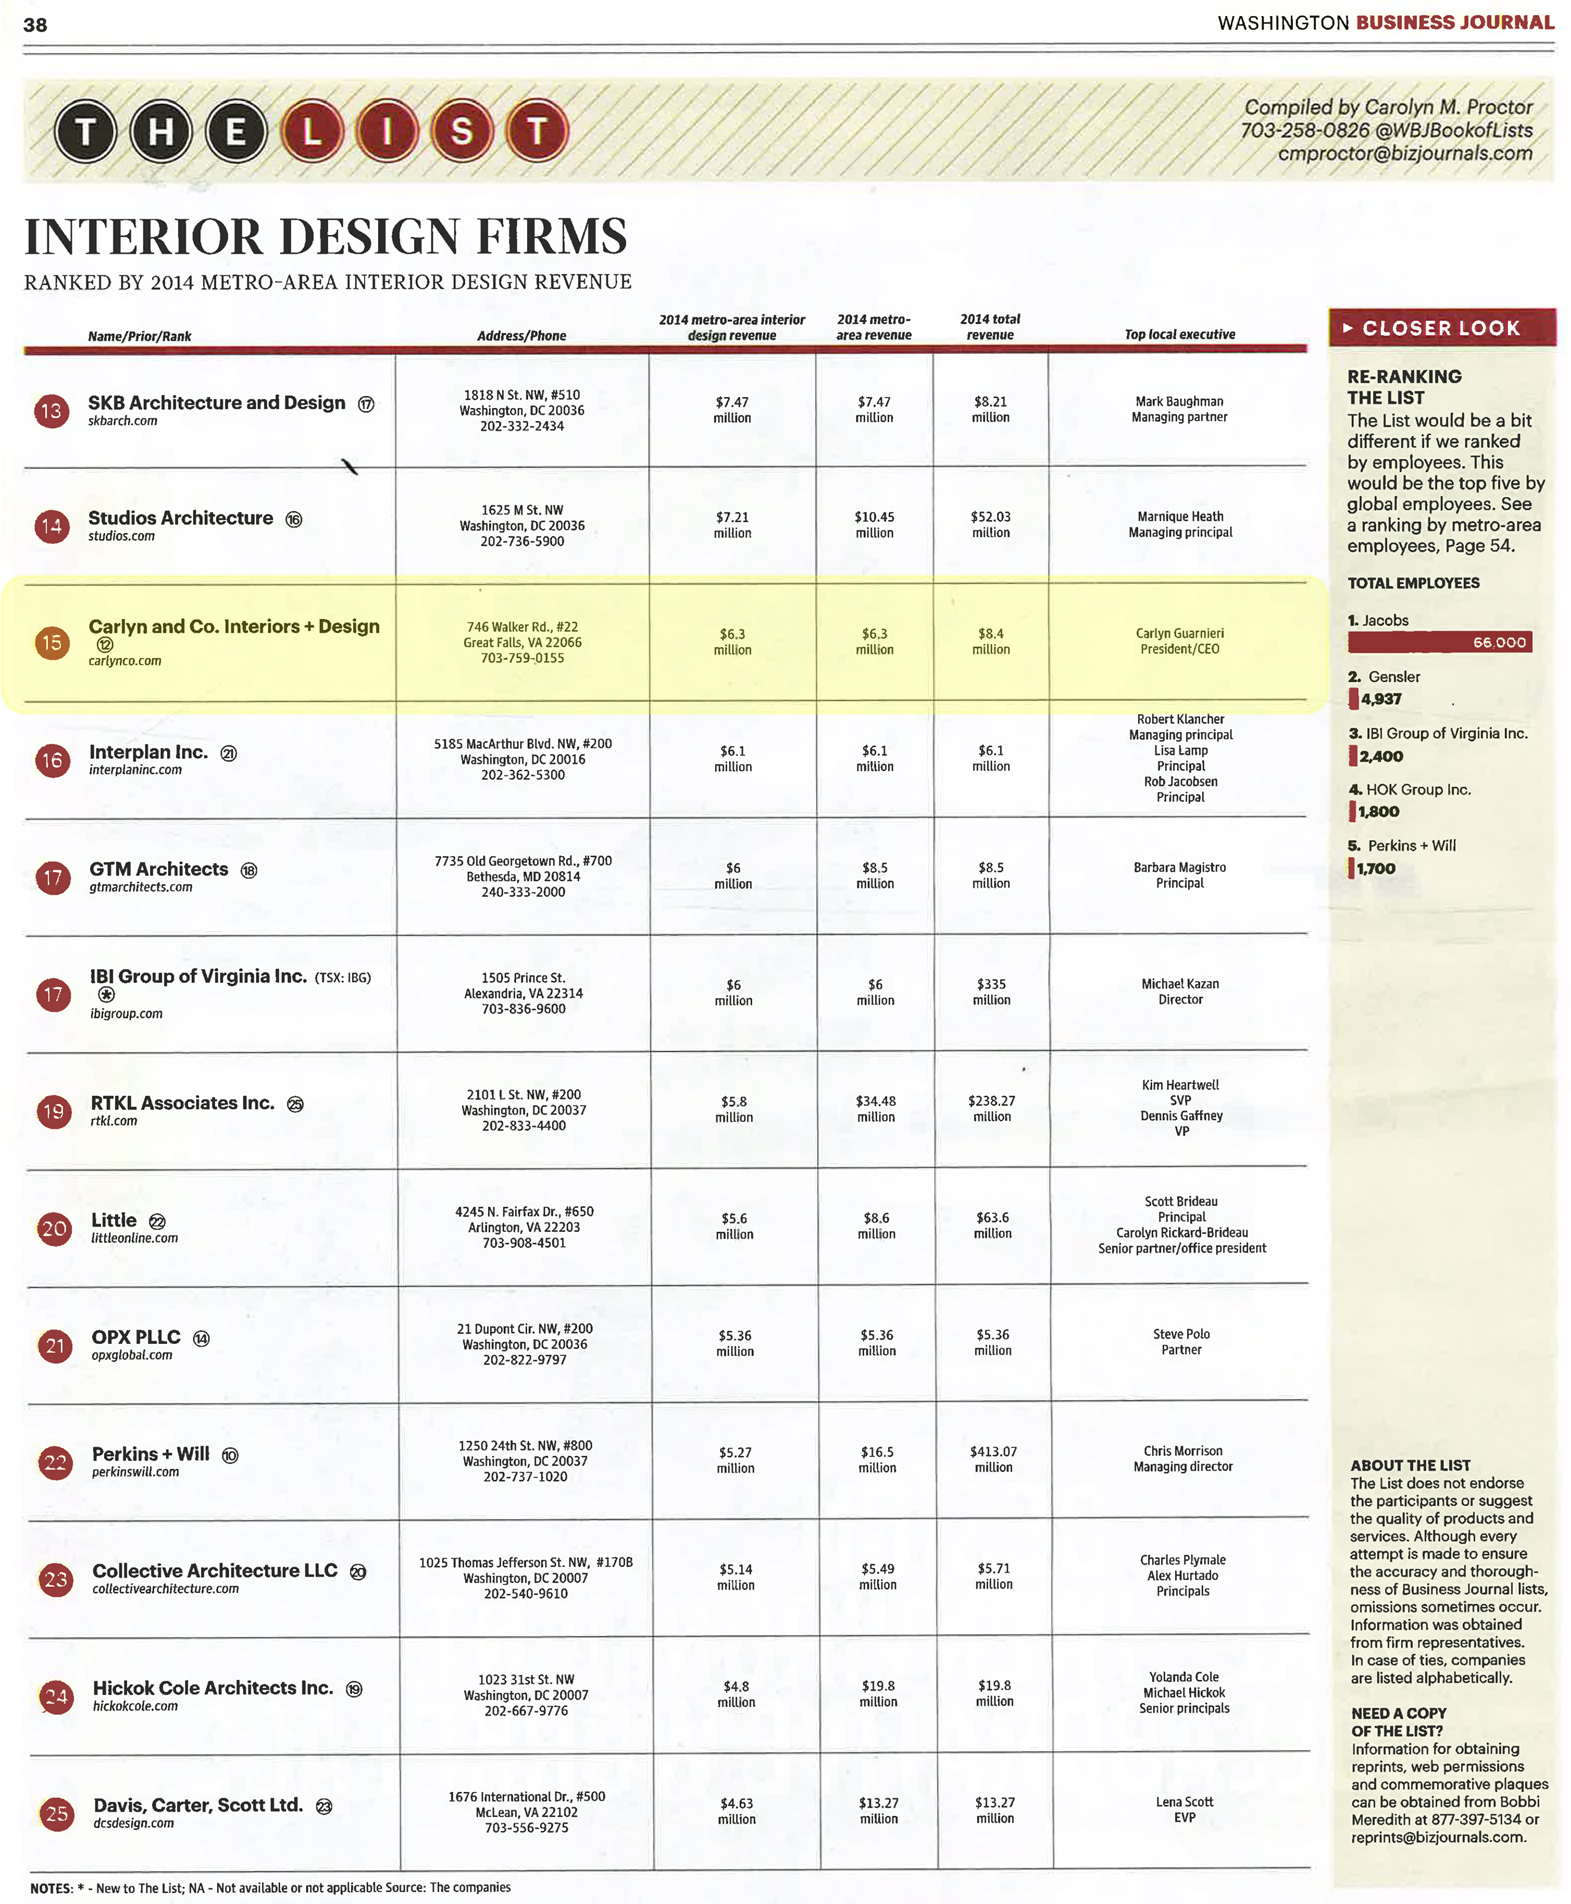 The Full List Of Interior Designers And Other Disciplines Is Available From  The Book Of Lists.